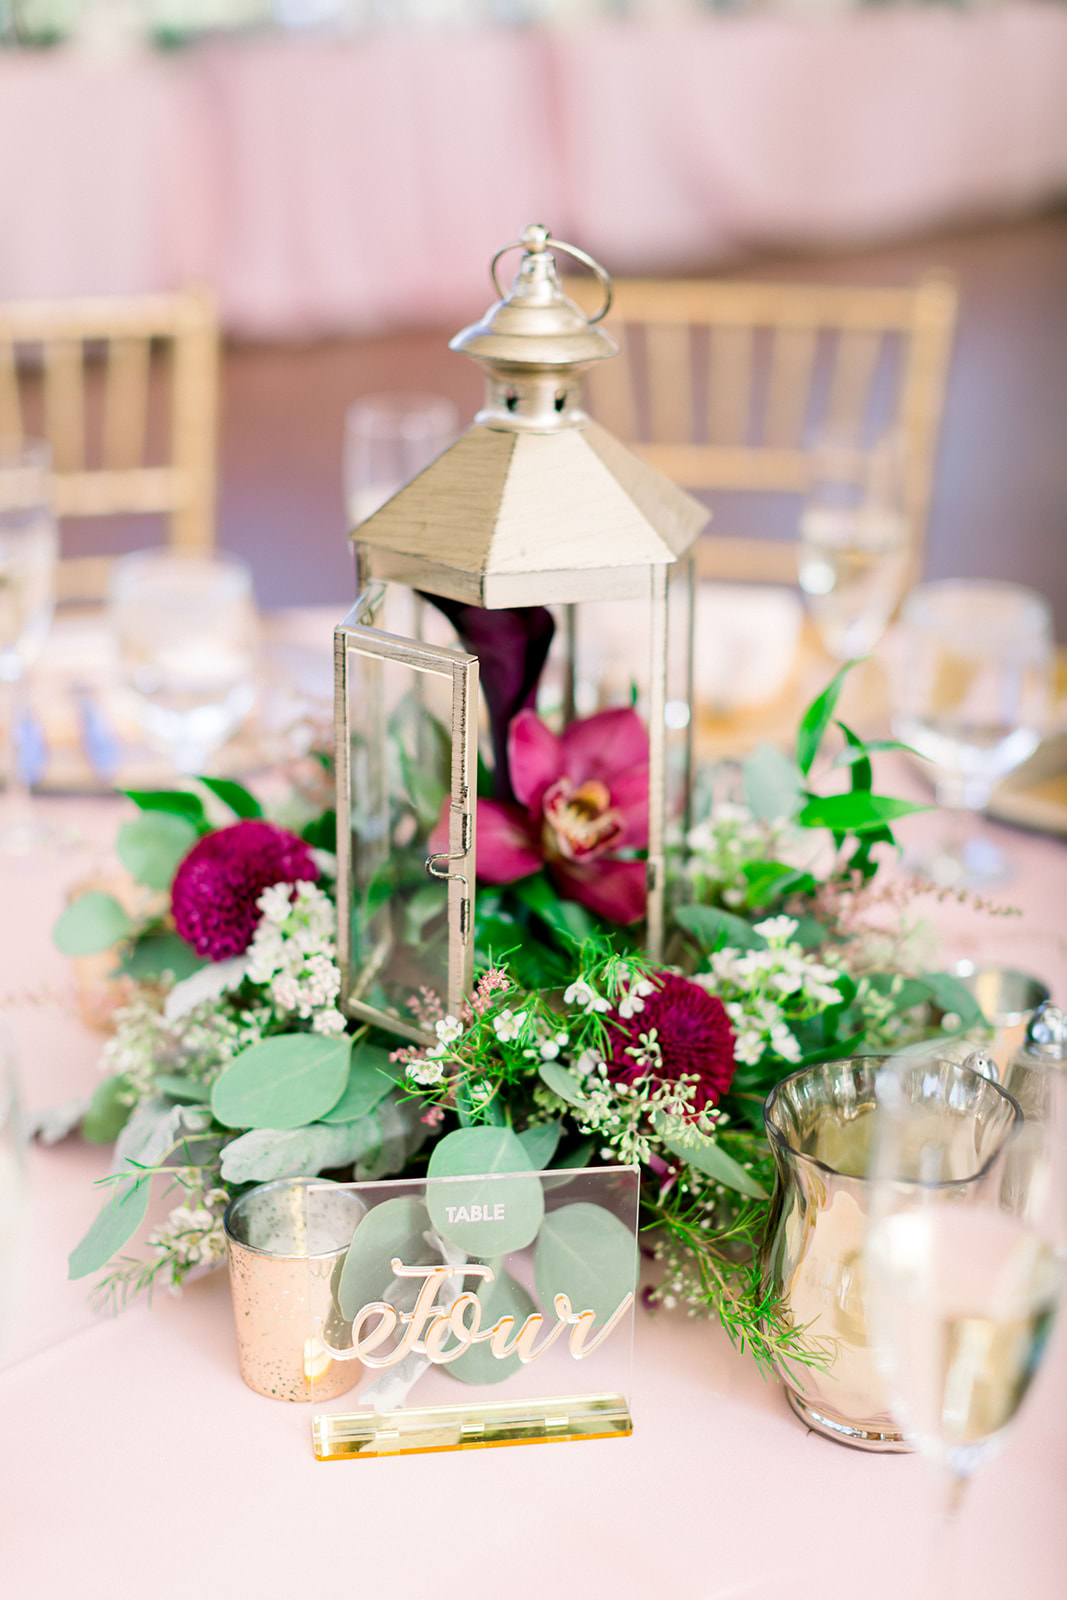 Rustic Wedding Archives - Marry Me Tampa Bay | Local, Real Wedding  Inspiration & Vendor Recommendation & Reviews